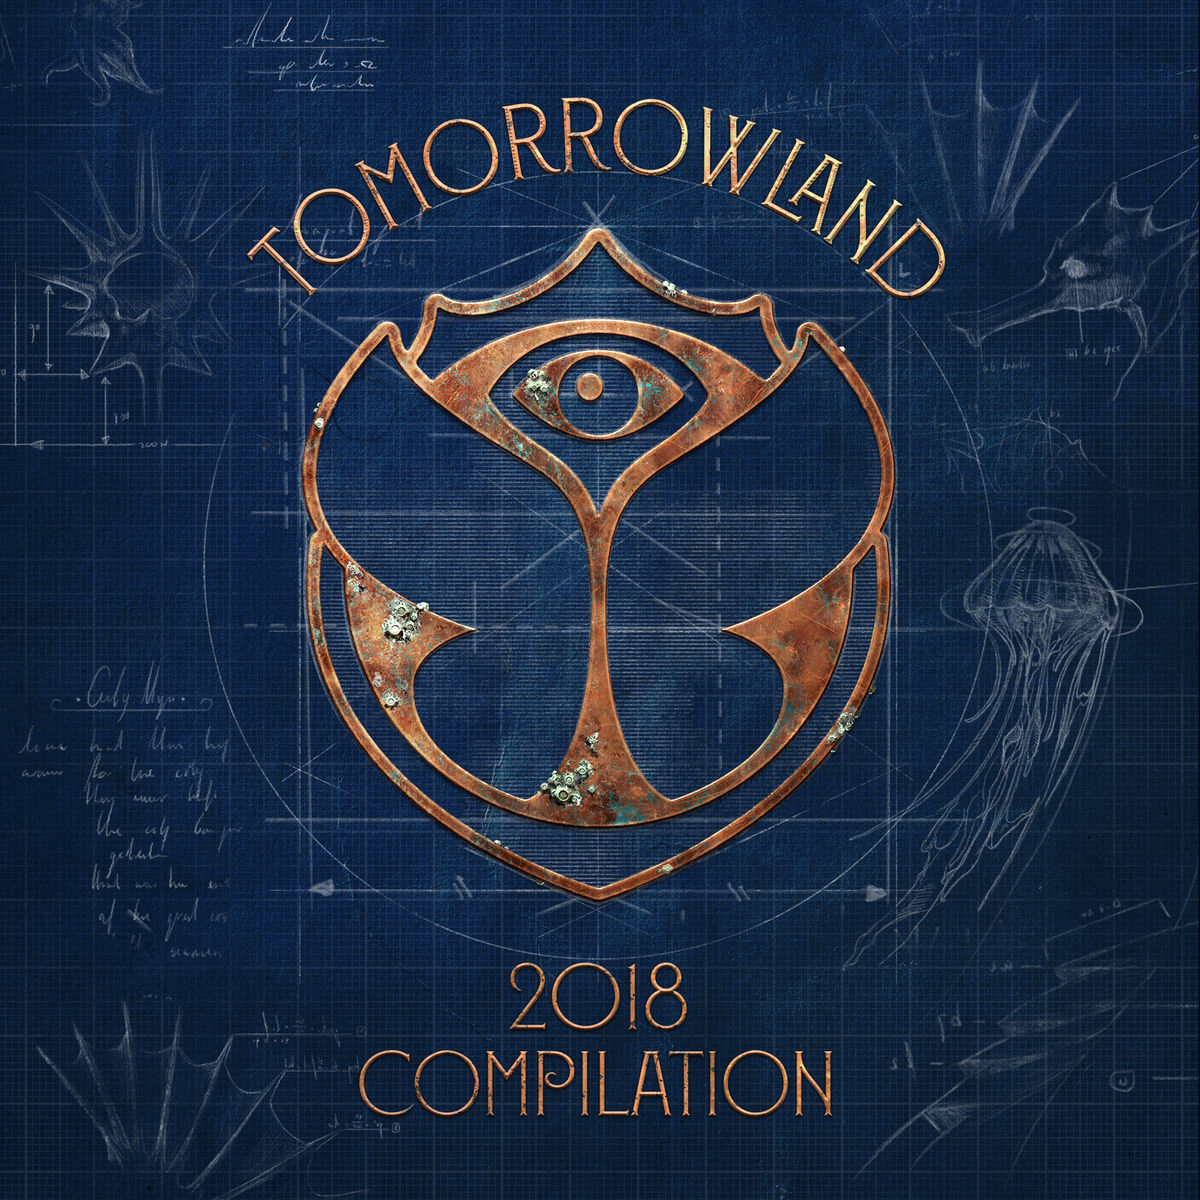 Ultratopbe Tomorrowland 2018 Compilation The Story Of Planaxis